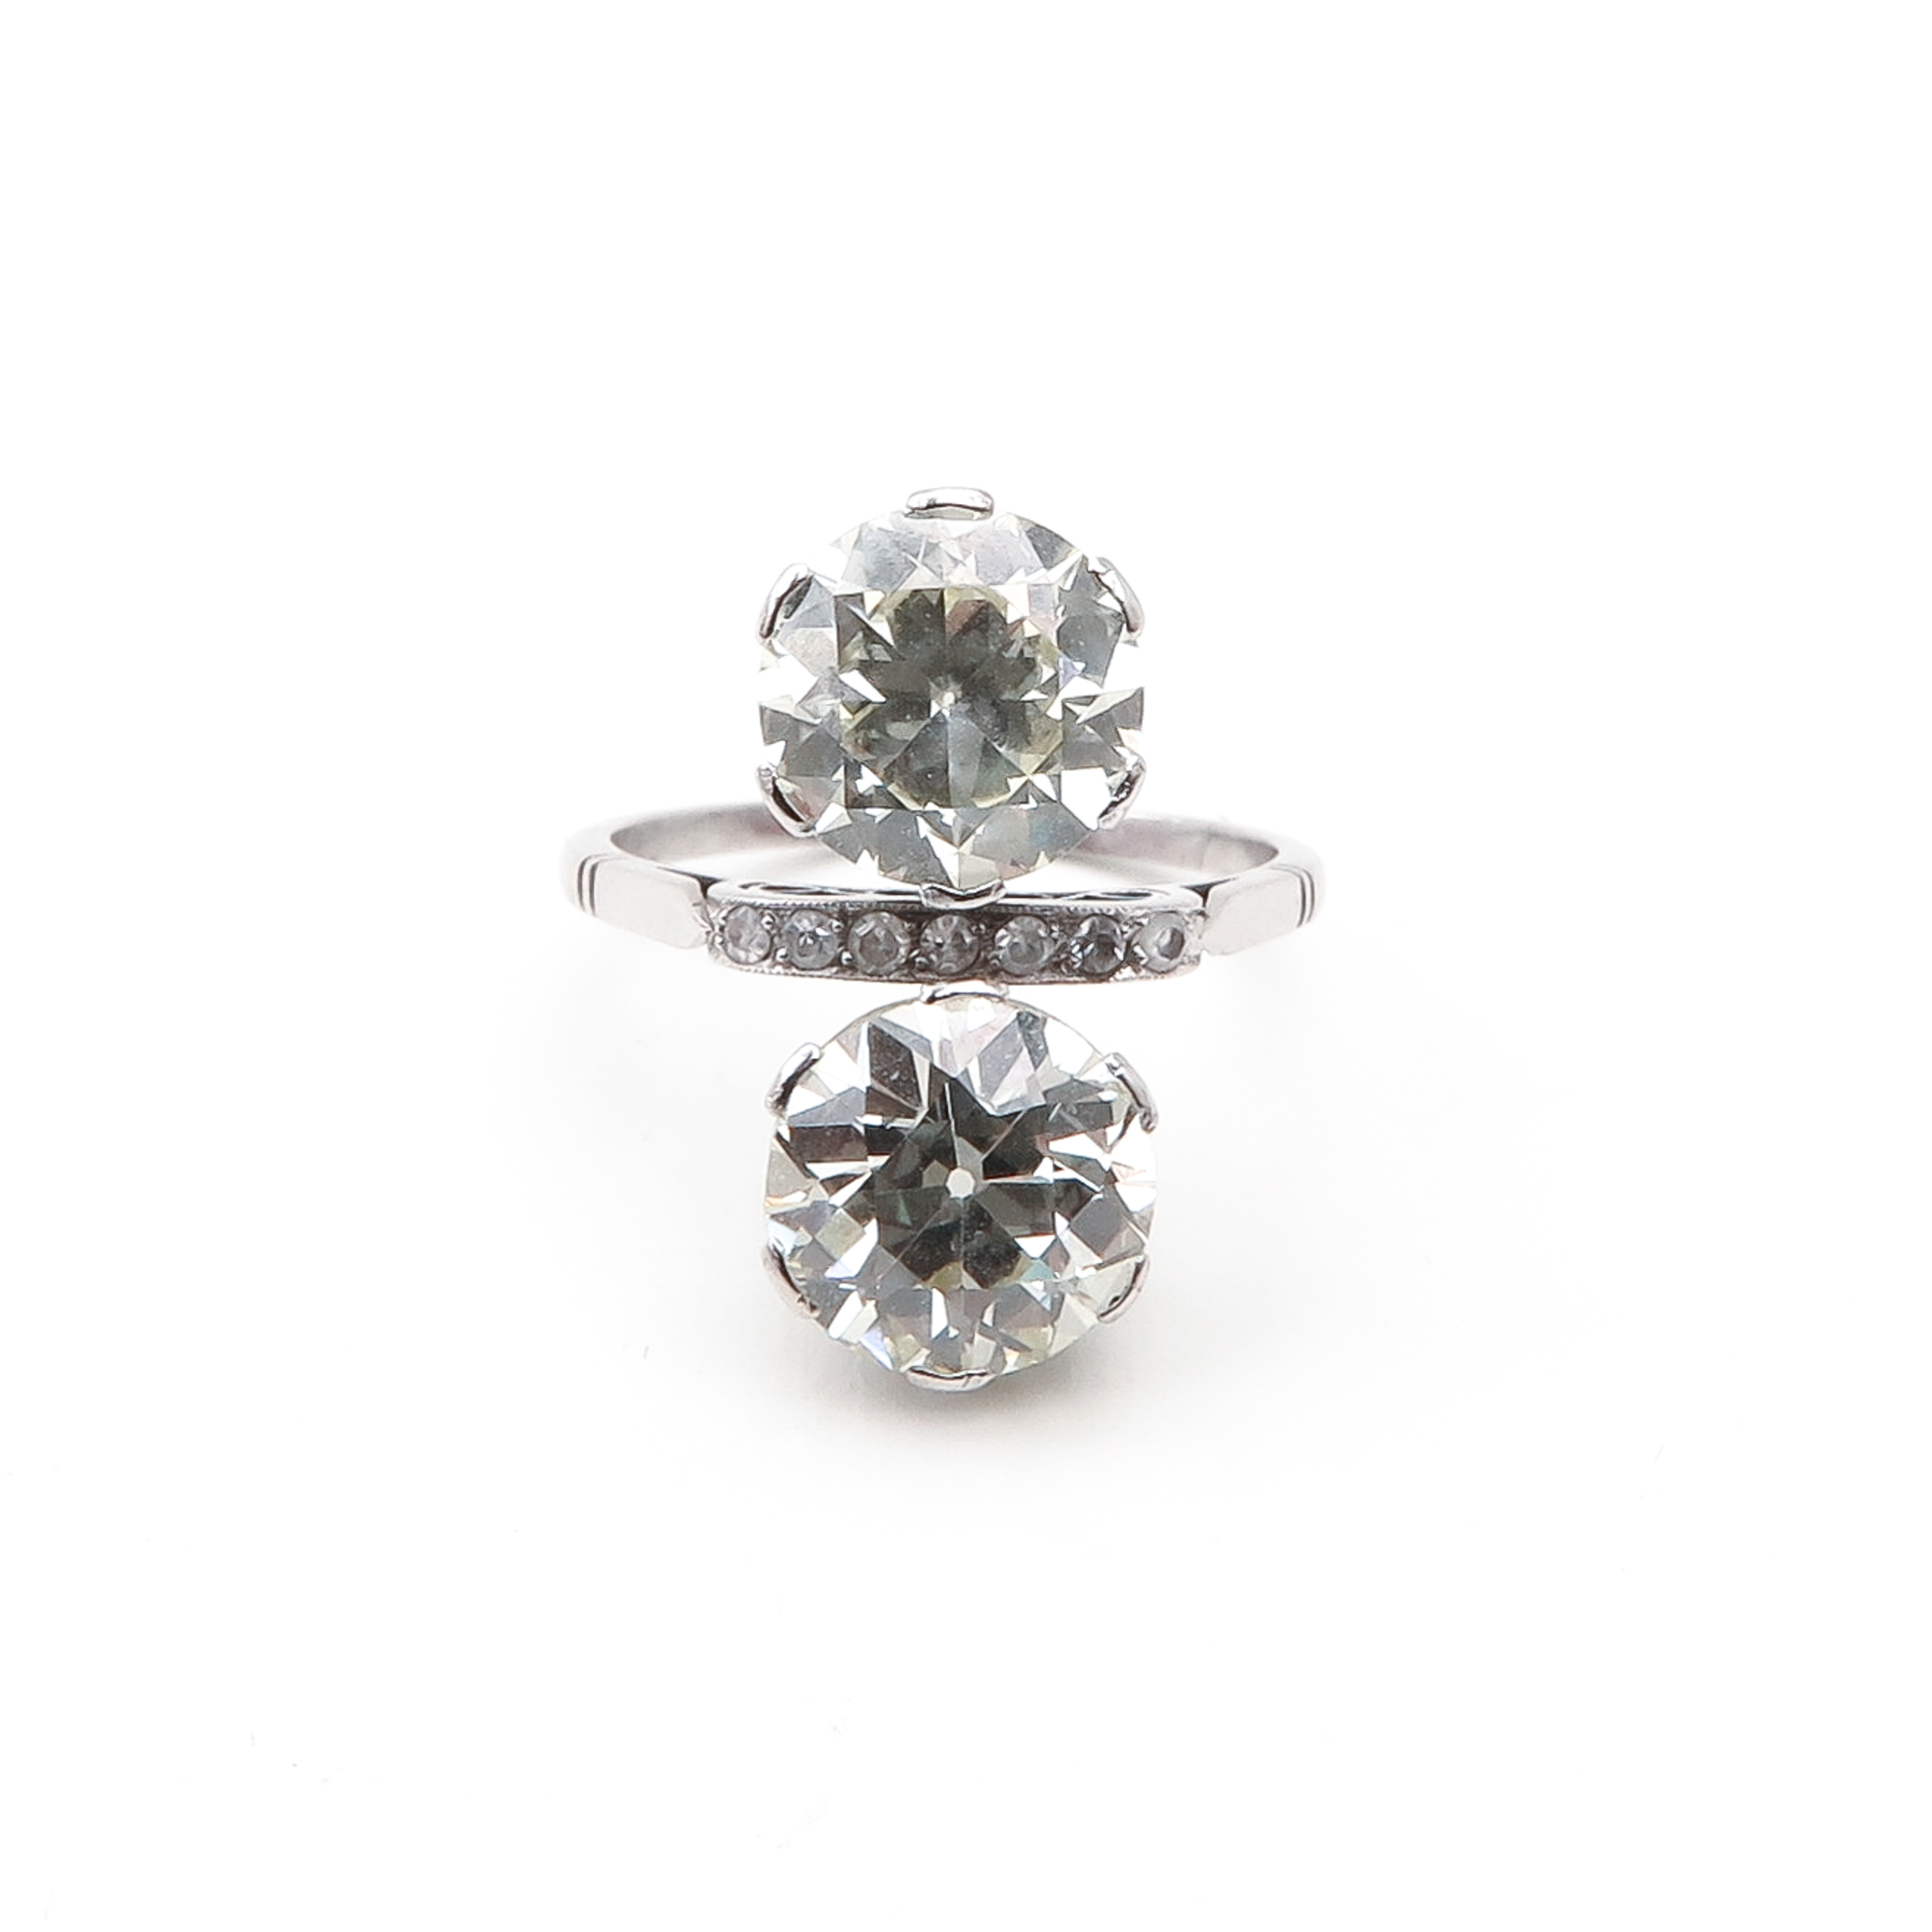 An Exceptional Ladies Diamond Ring Approx. 5 Carats